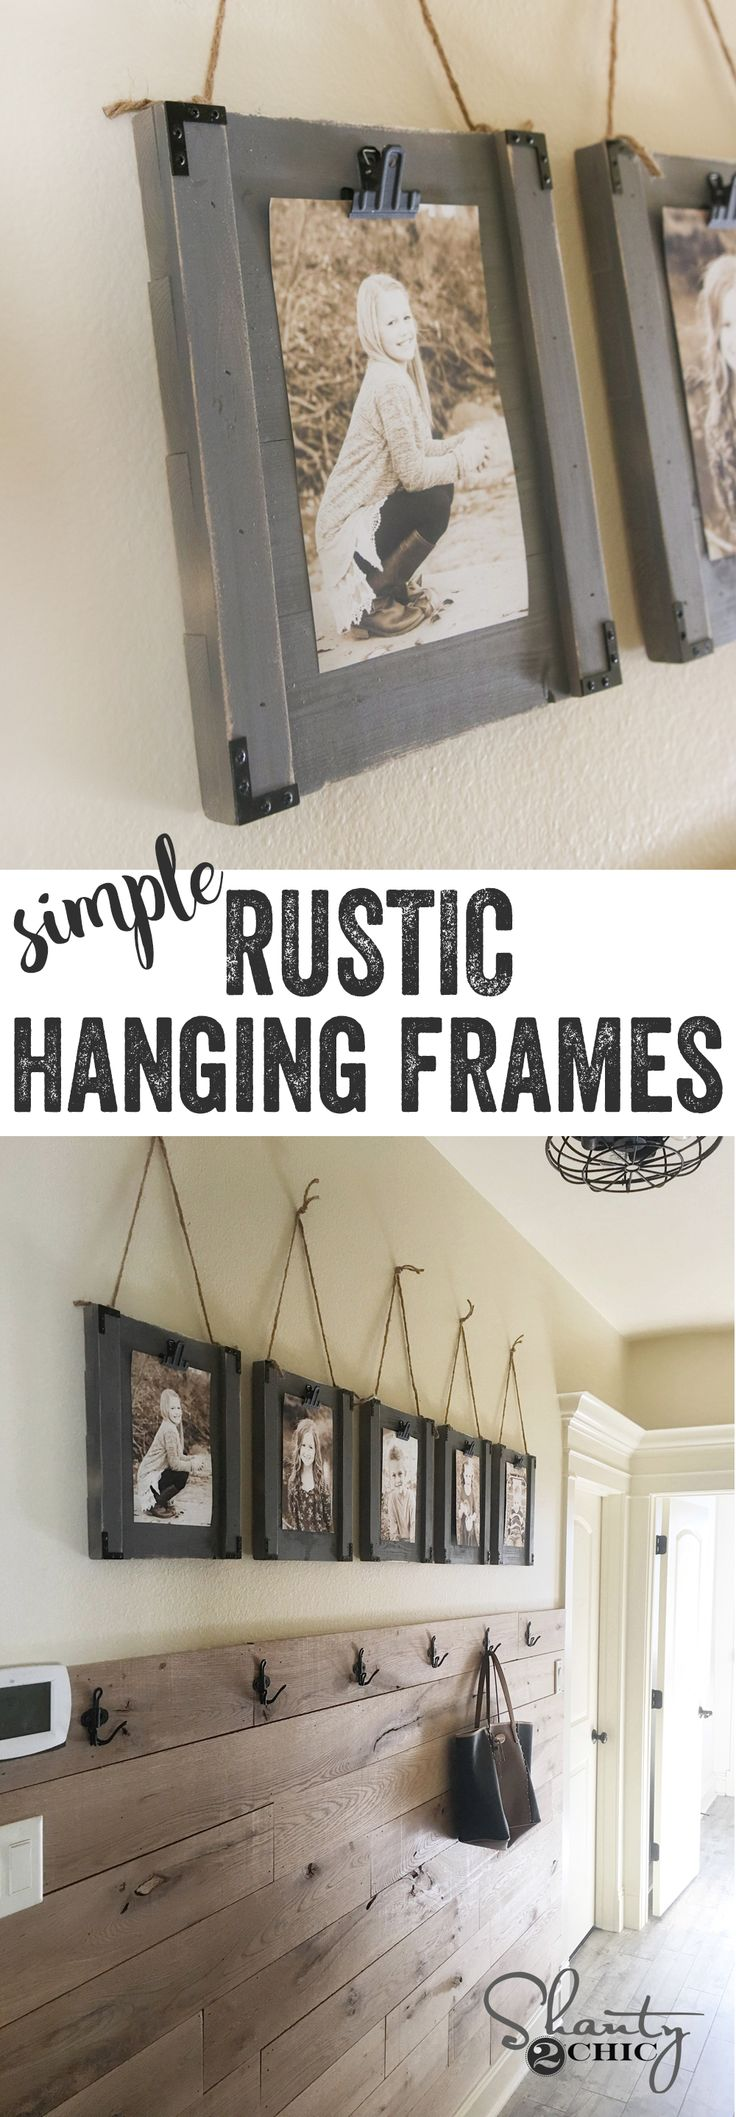 395 best unique framing ideas images on pinterest home ideas diy hanging frames and youtube video jeuxipadfo Image collections